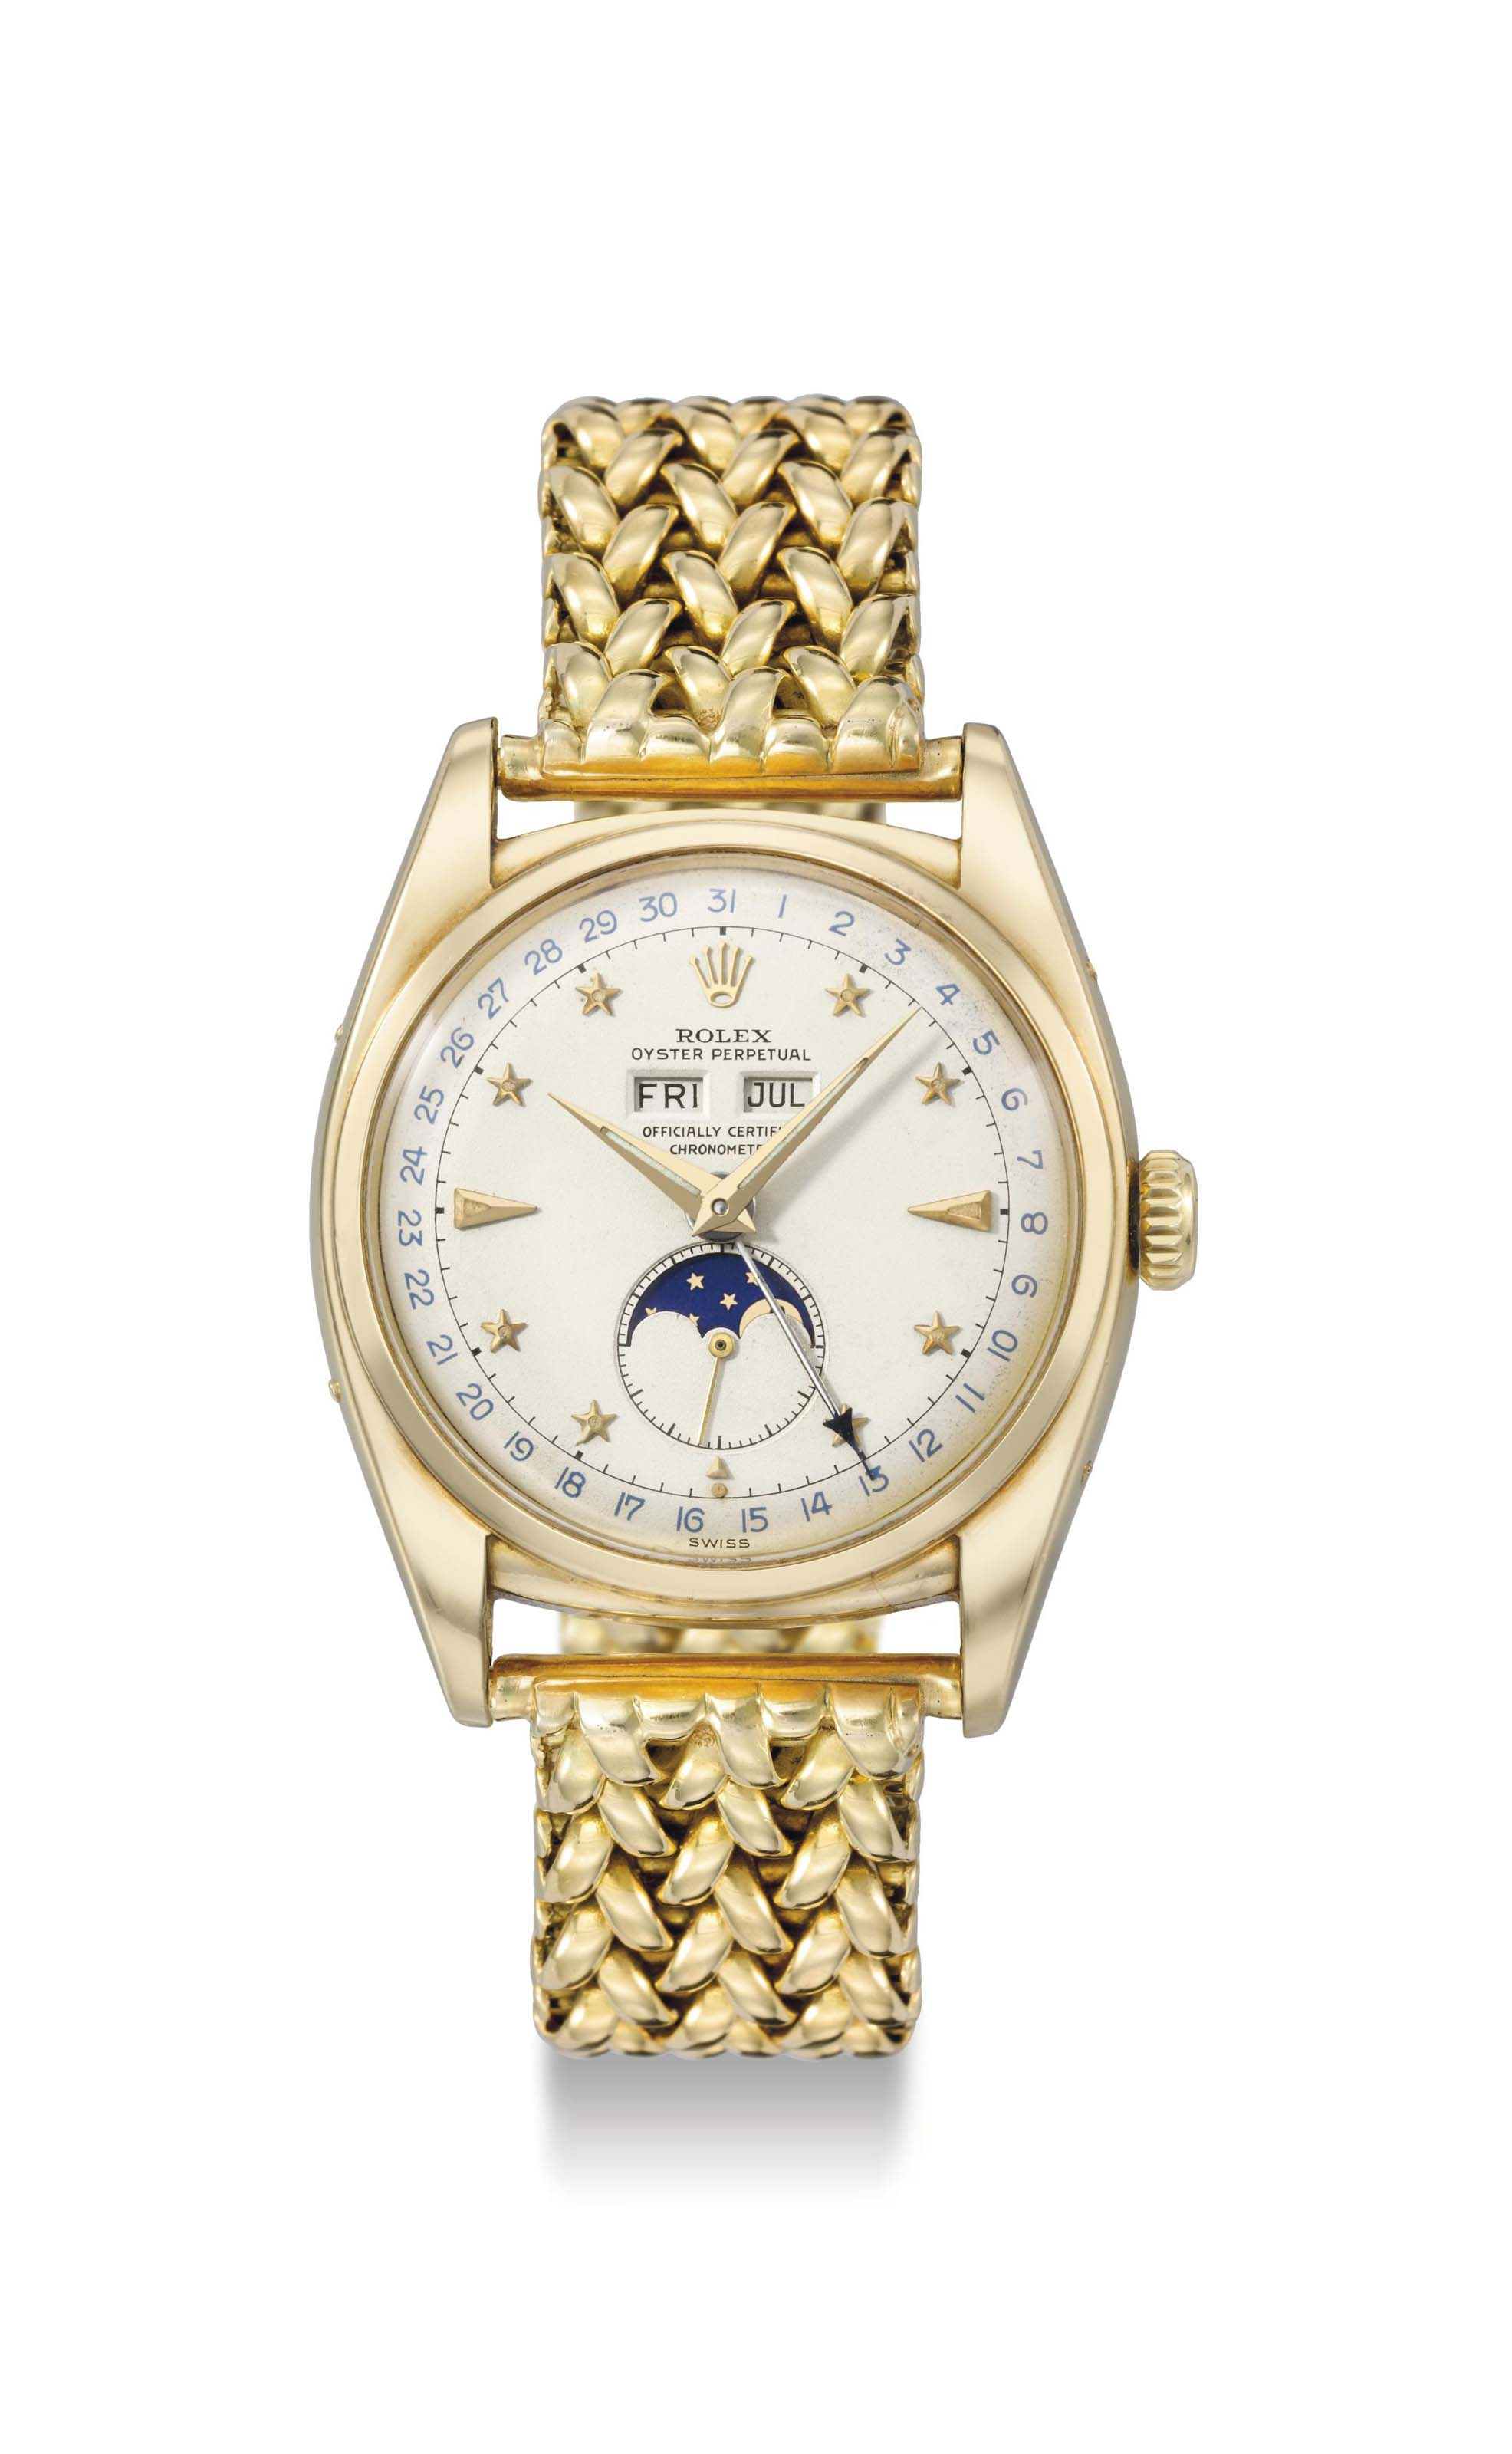 Rolex. A very rare, attractive and important 18K gold automatic triple calendar wristwatch with moon phases, bracelet and star dial